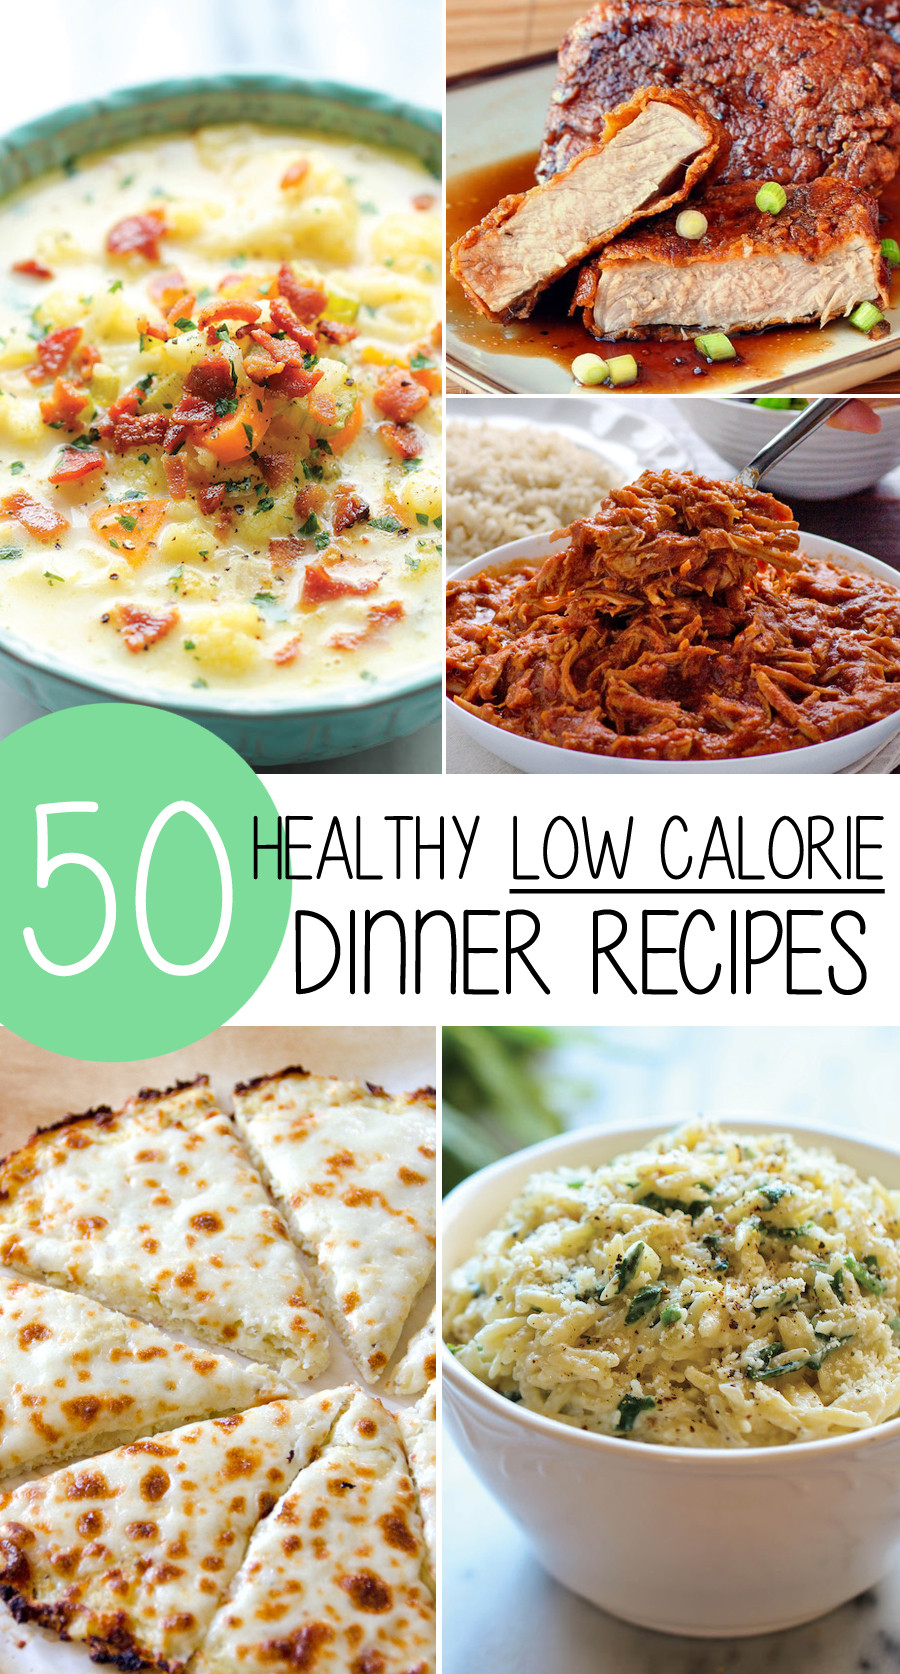 Healthy Low Calorie Snacks  50 Healthy Low Calorie Weight Loss Dinner Recipes